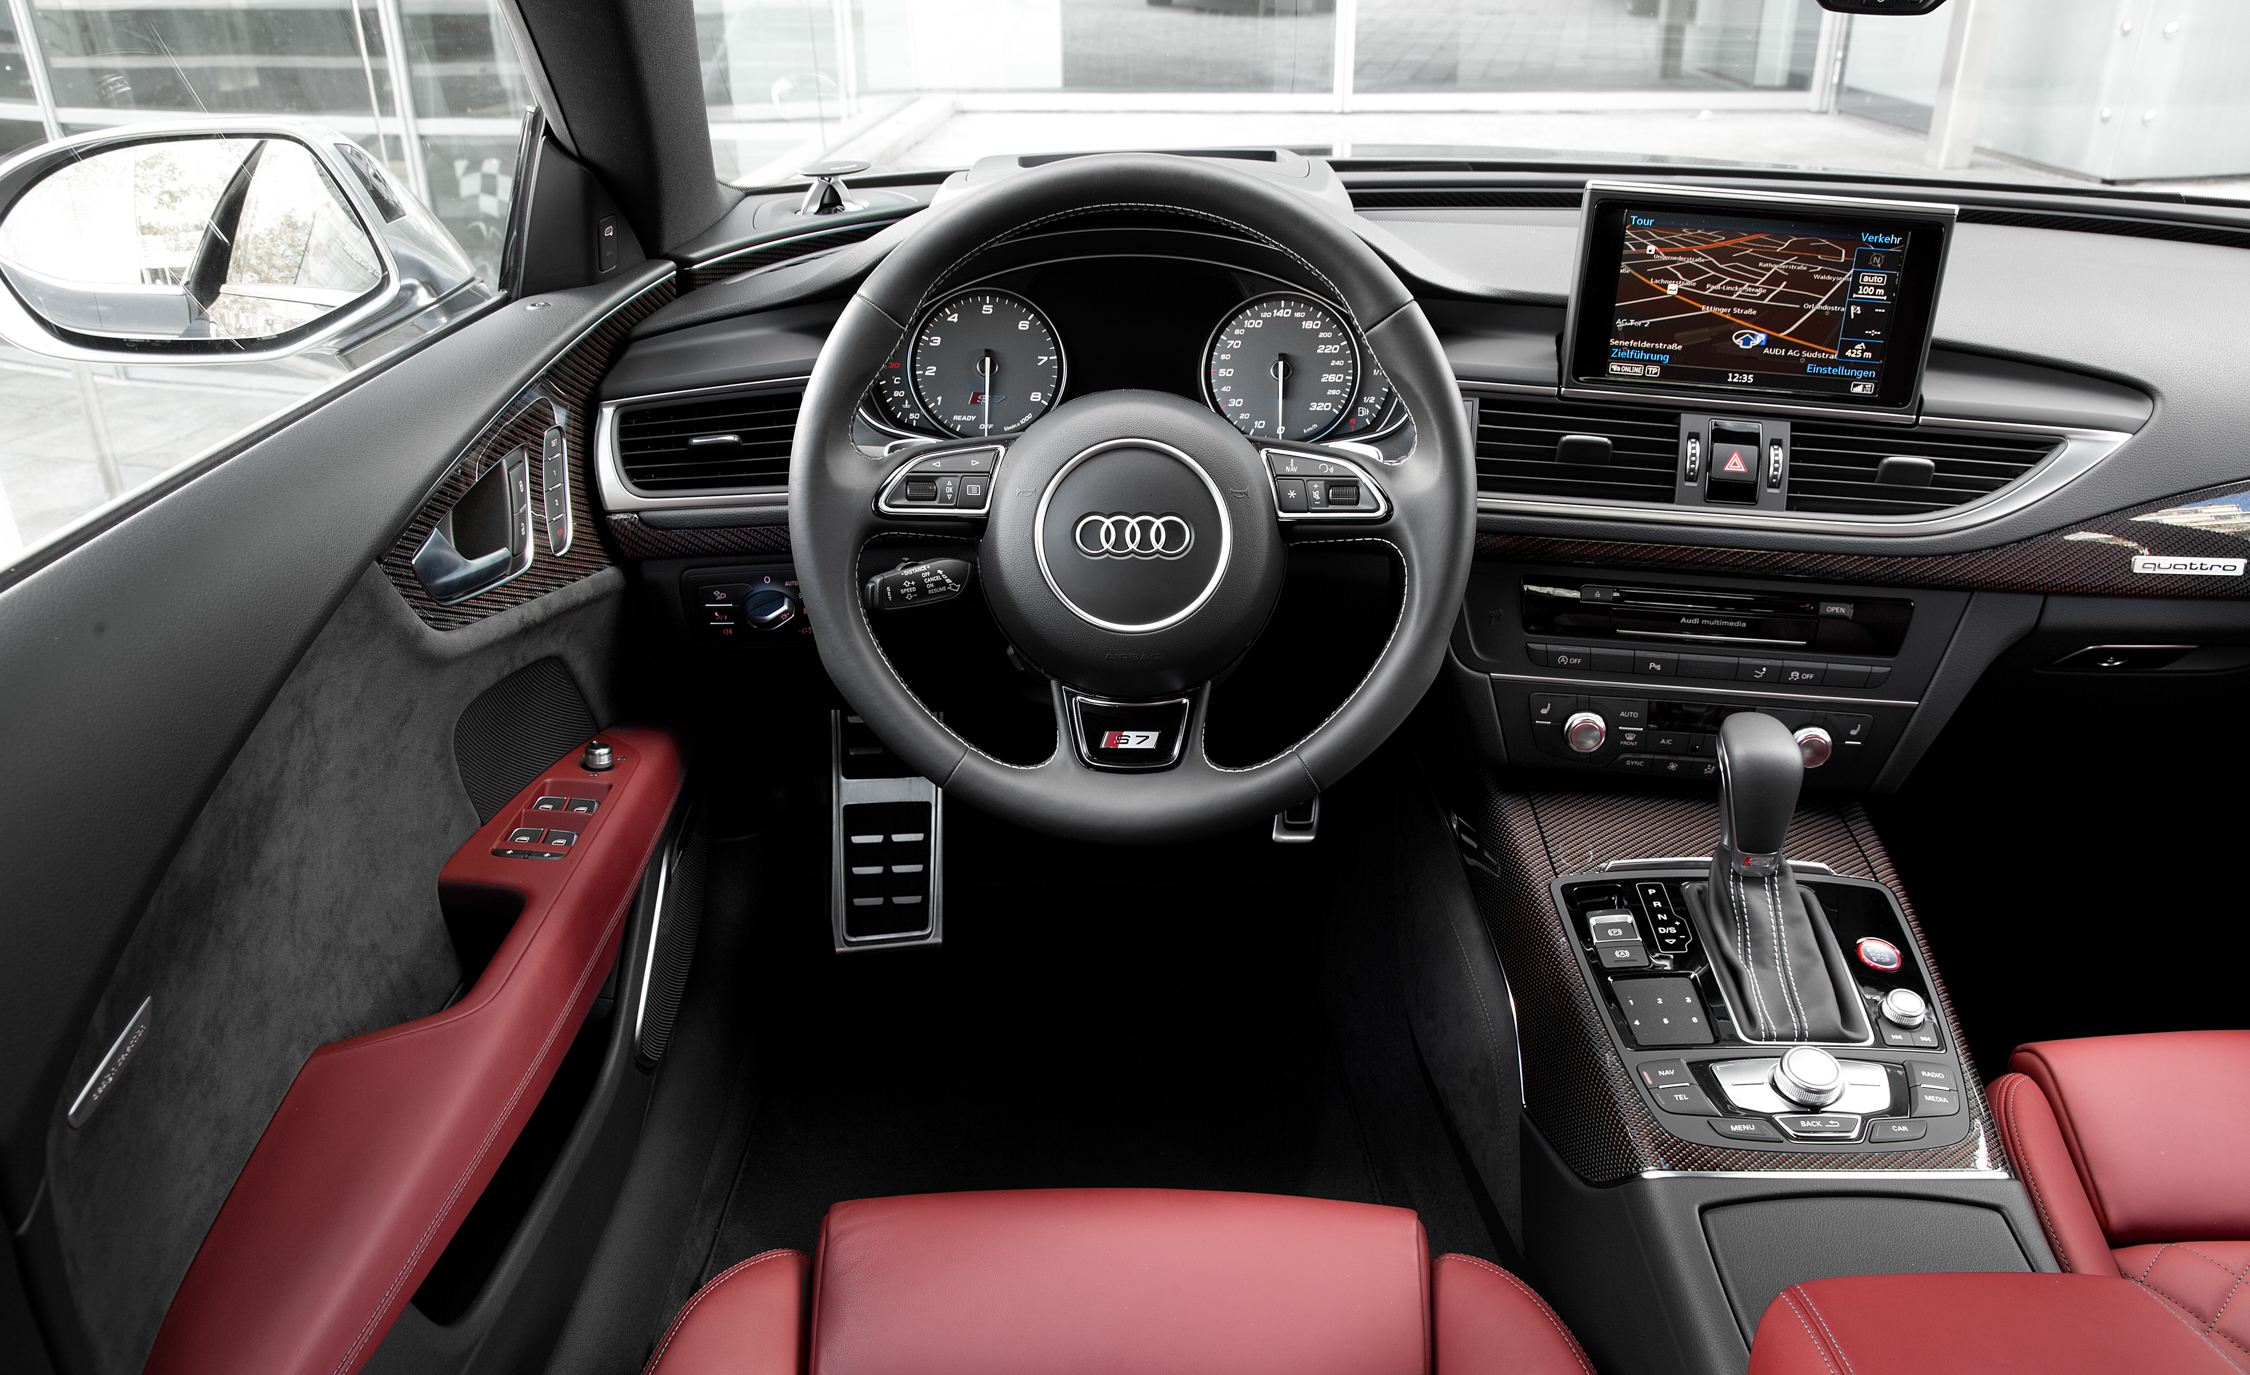 2016 Audi S7 Interior (Photo 12 of 30)